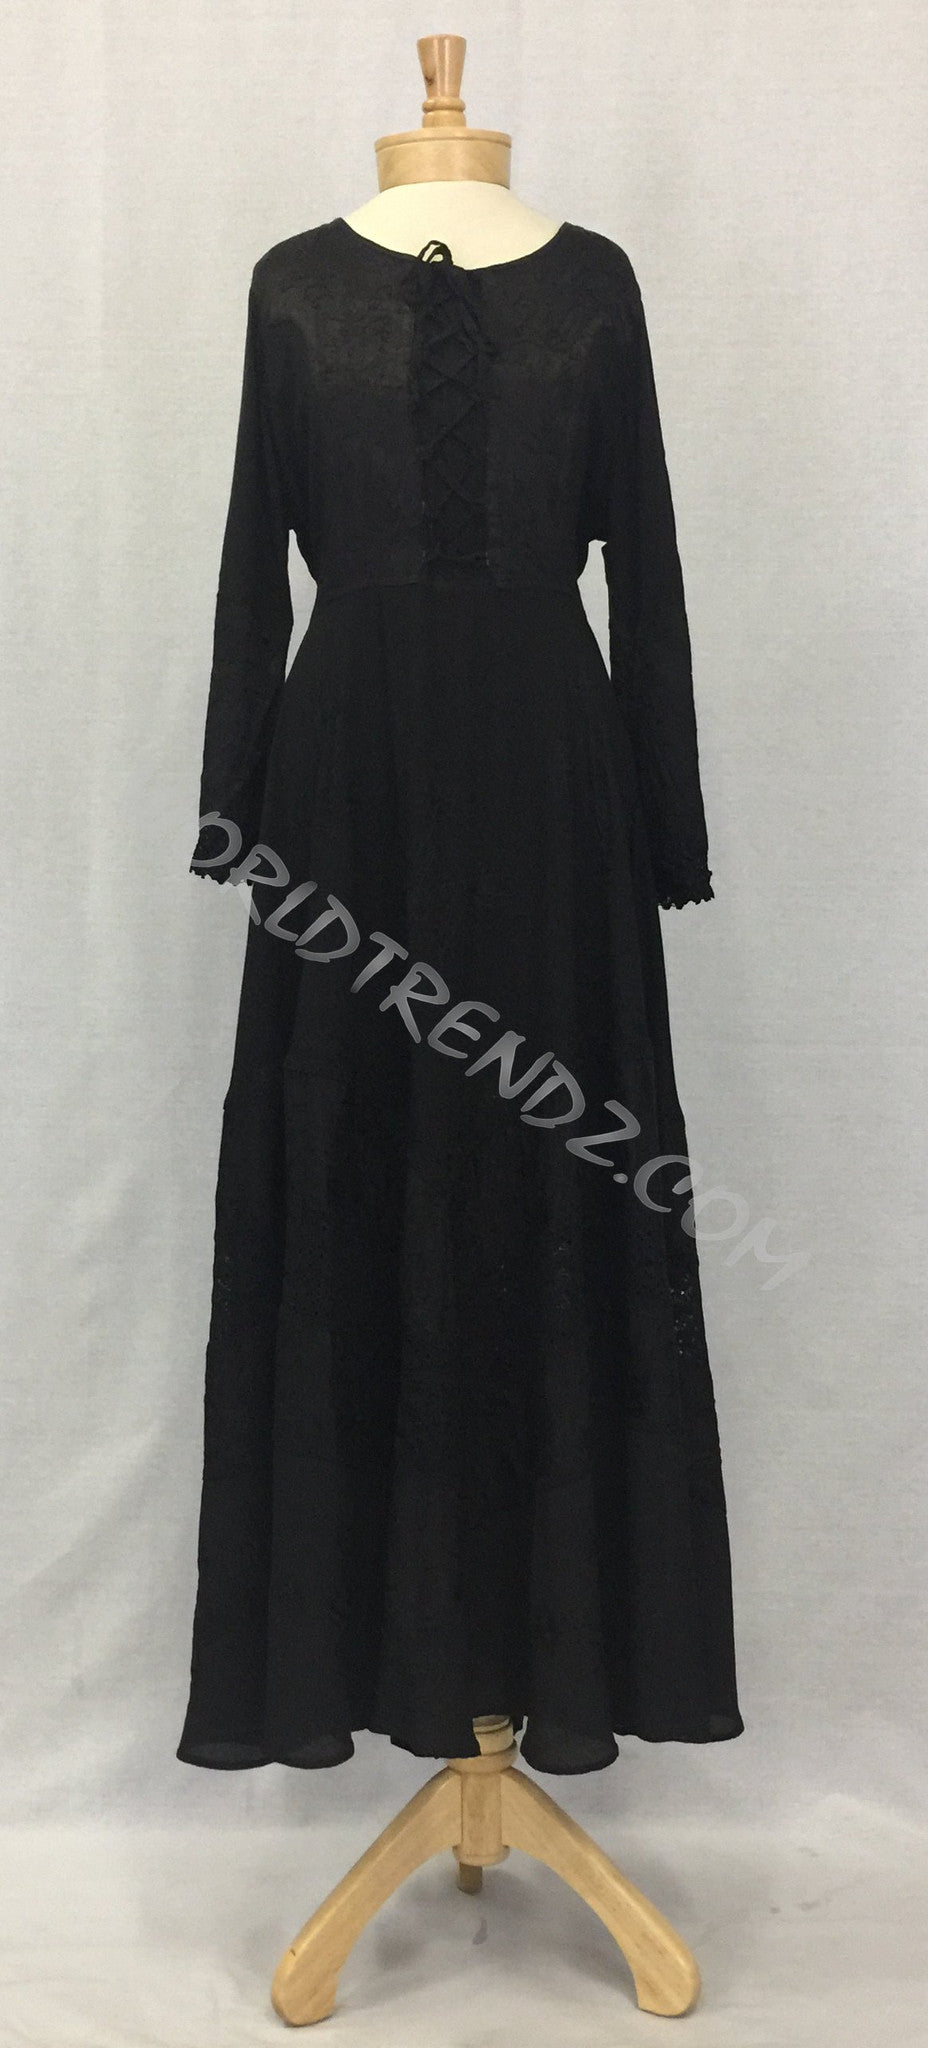 LACE-UP MEDIEVAL DRESS BLACK